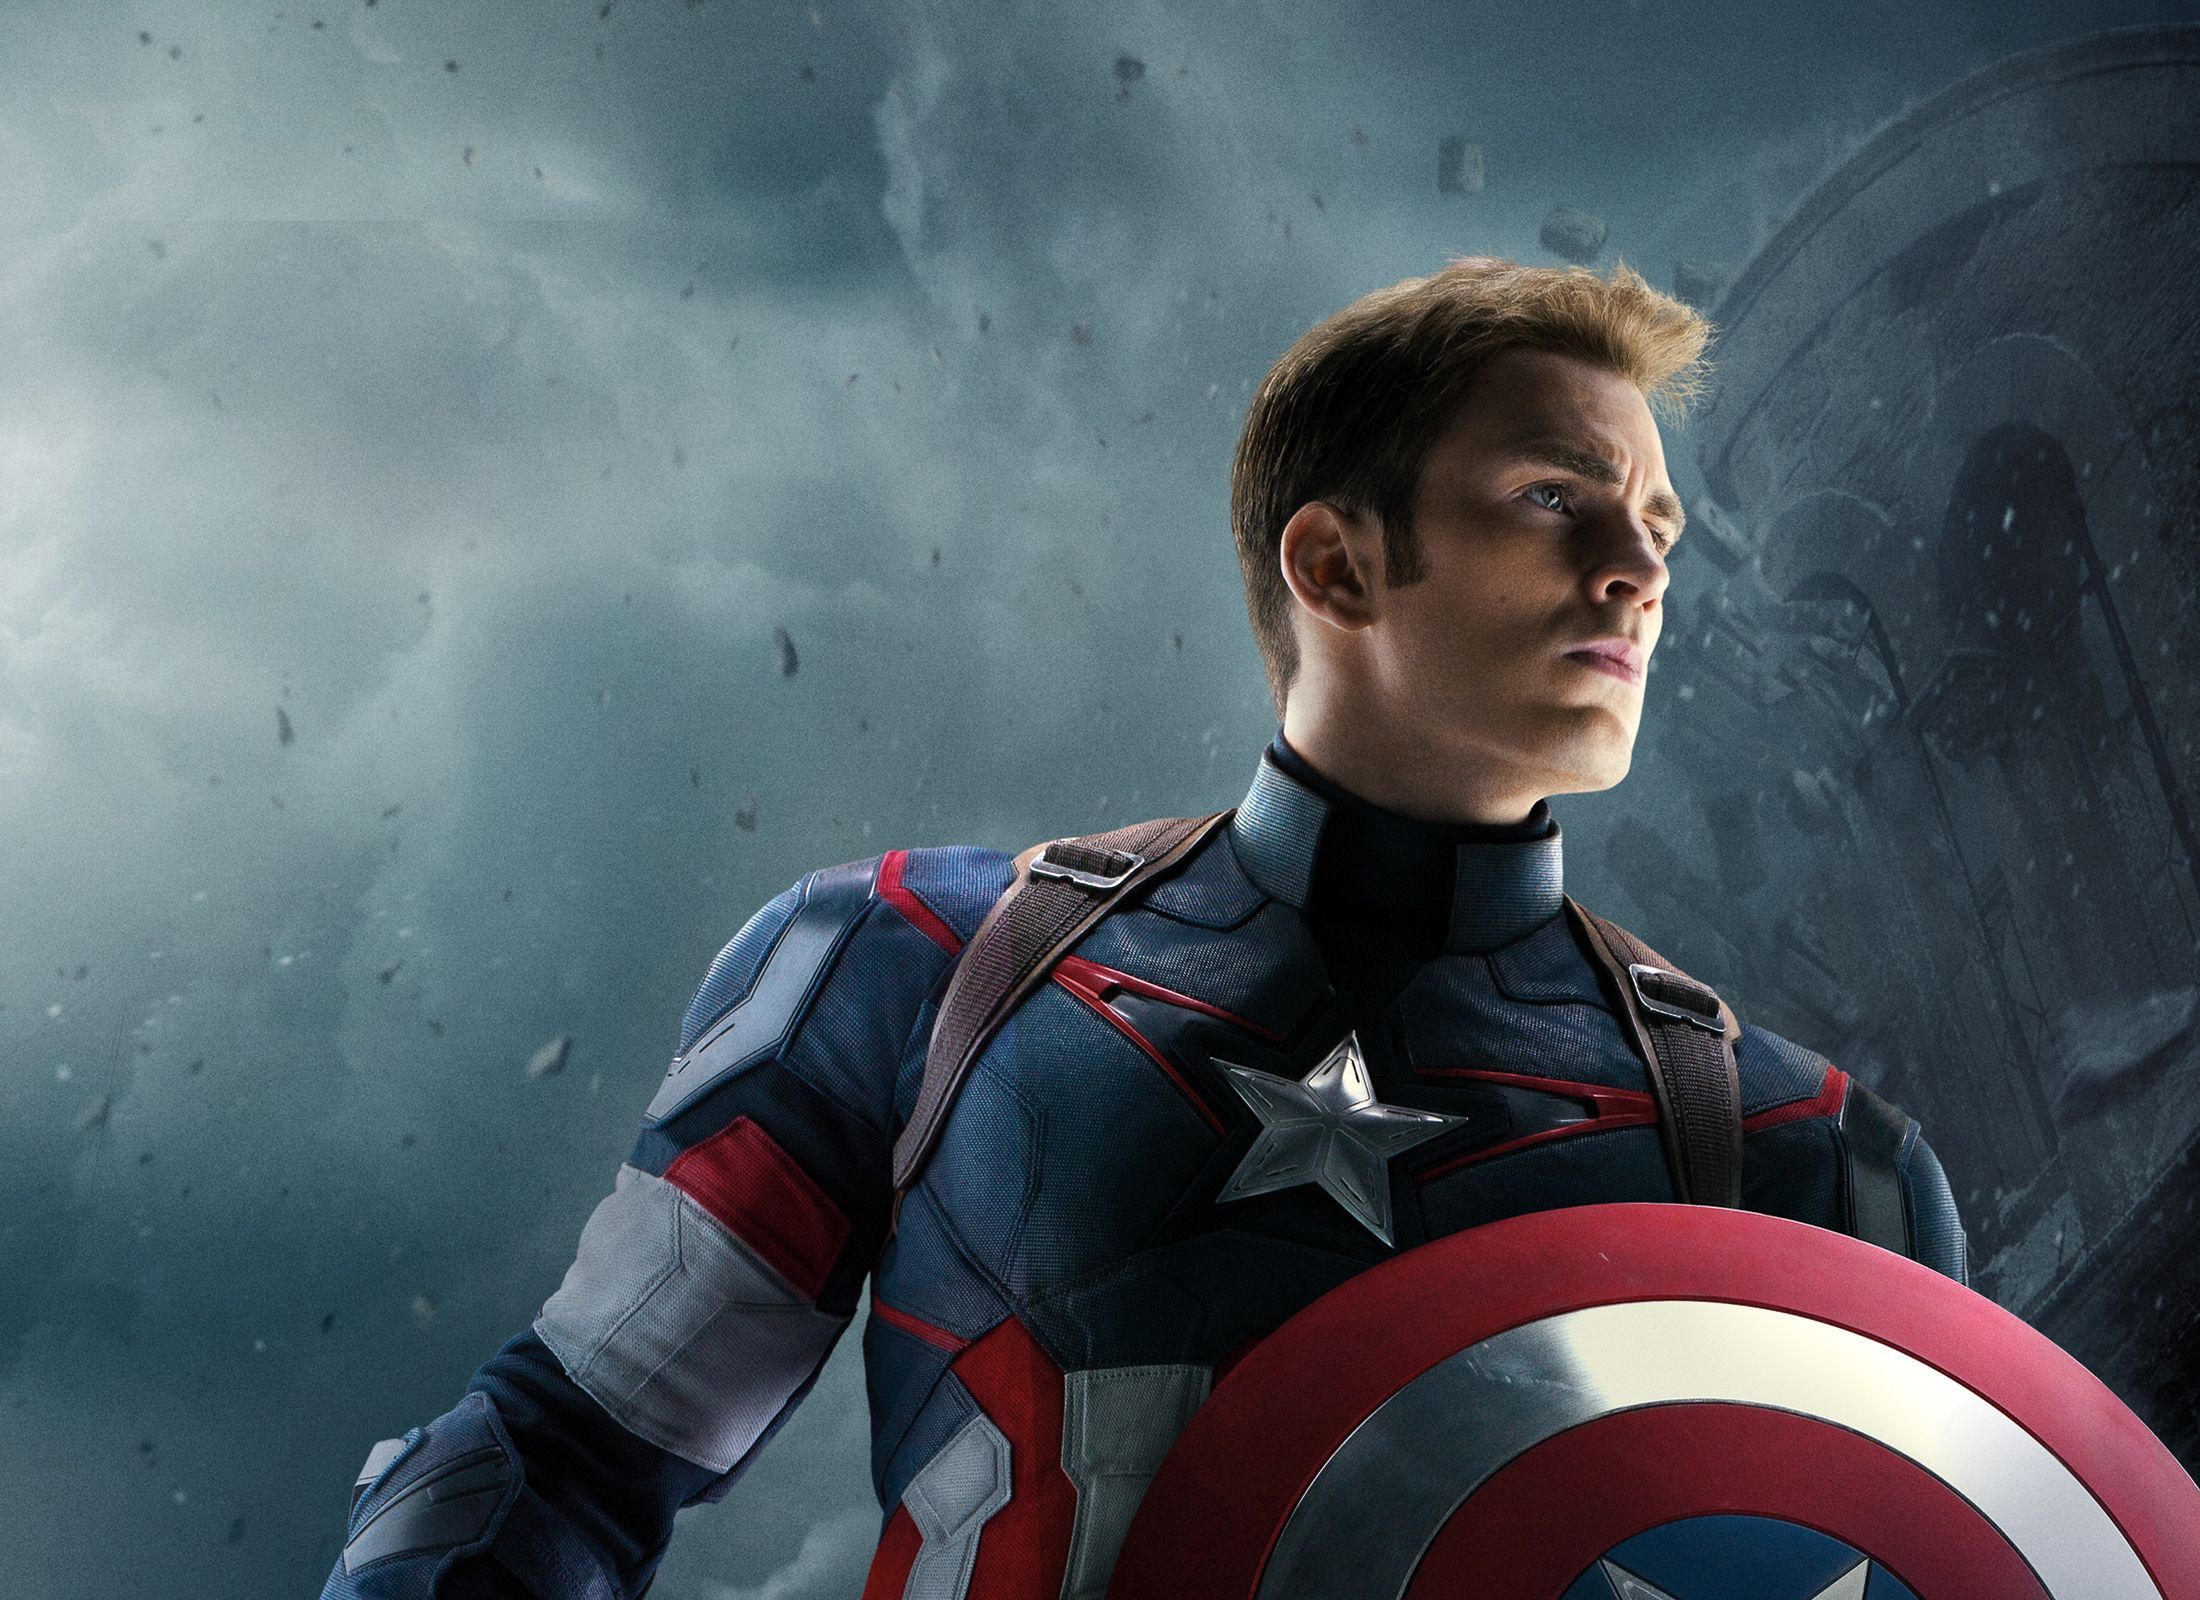 The Avengers Captain America Hd Wallpapers Capitan America